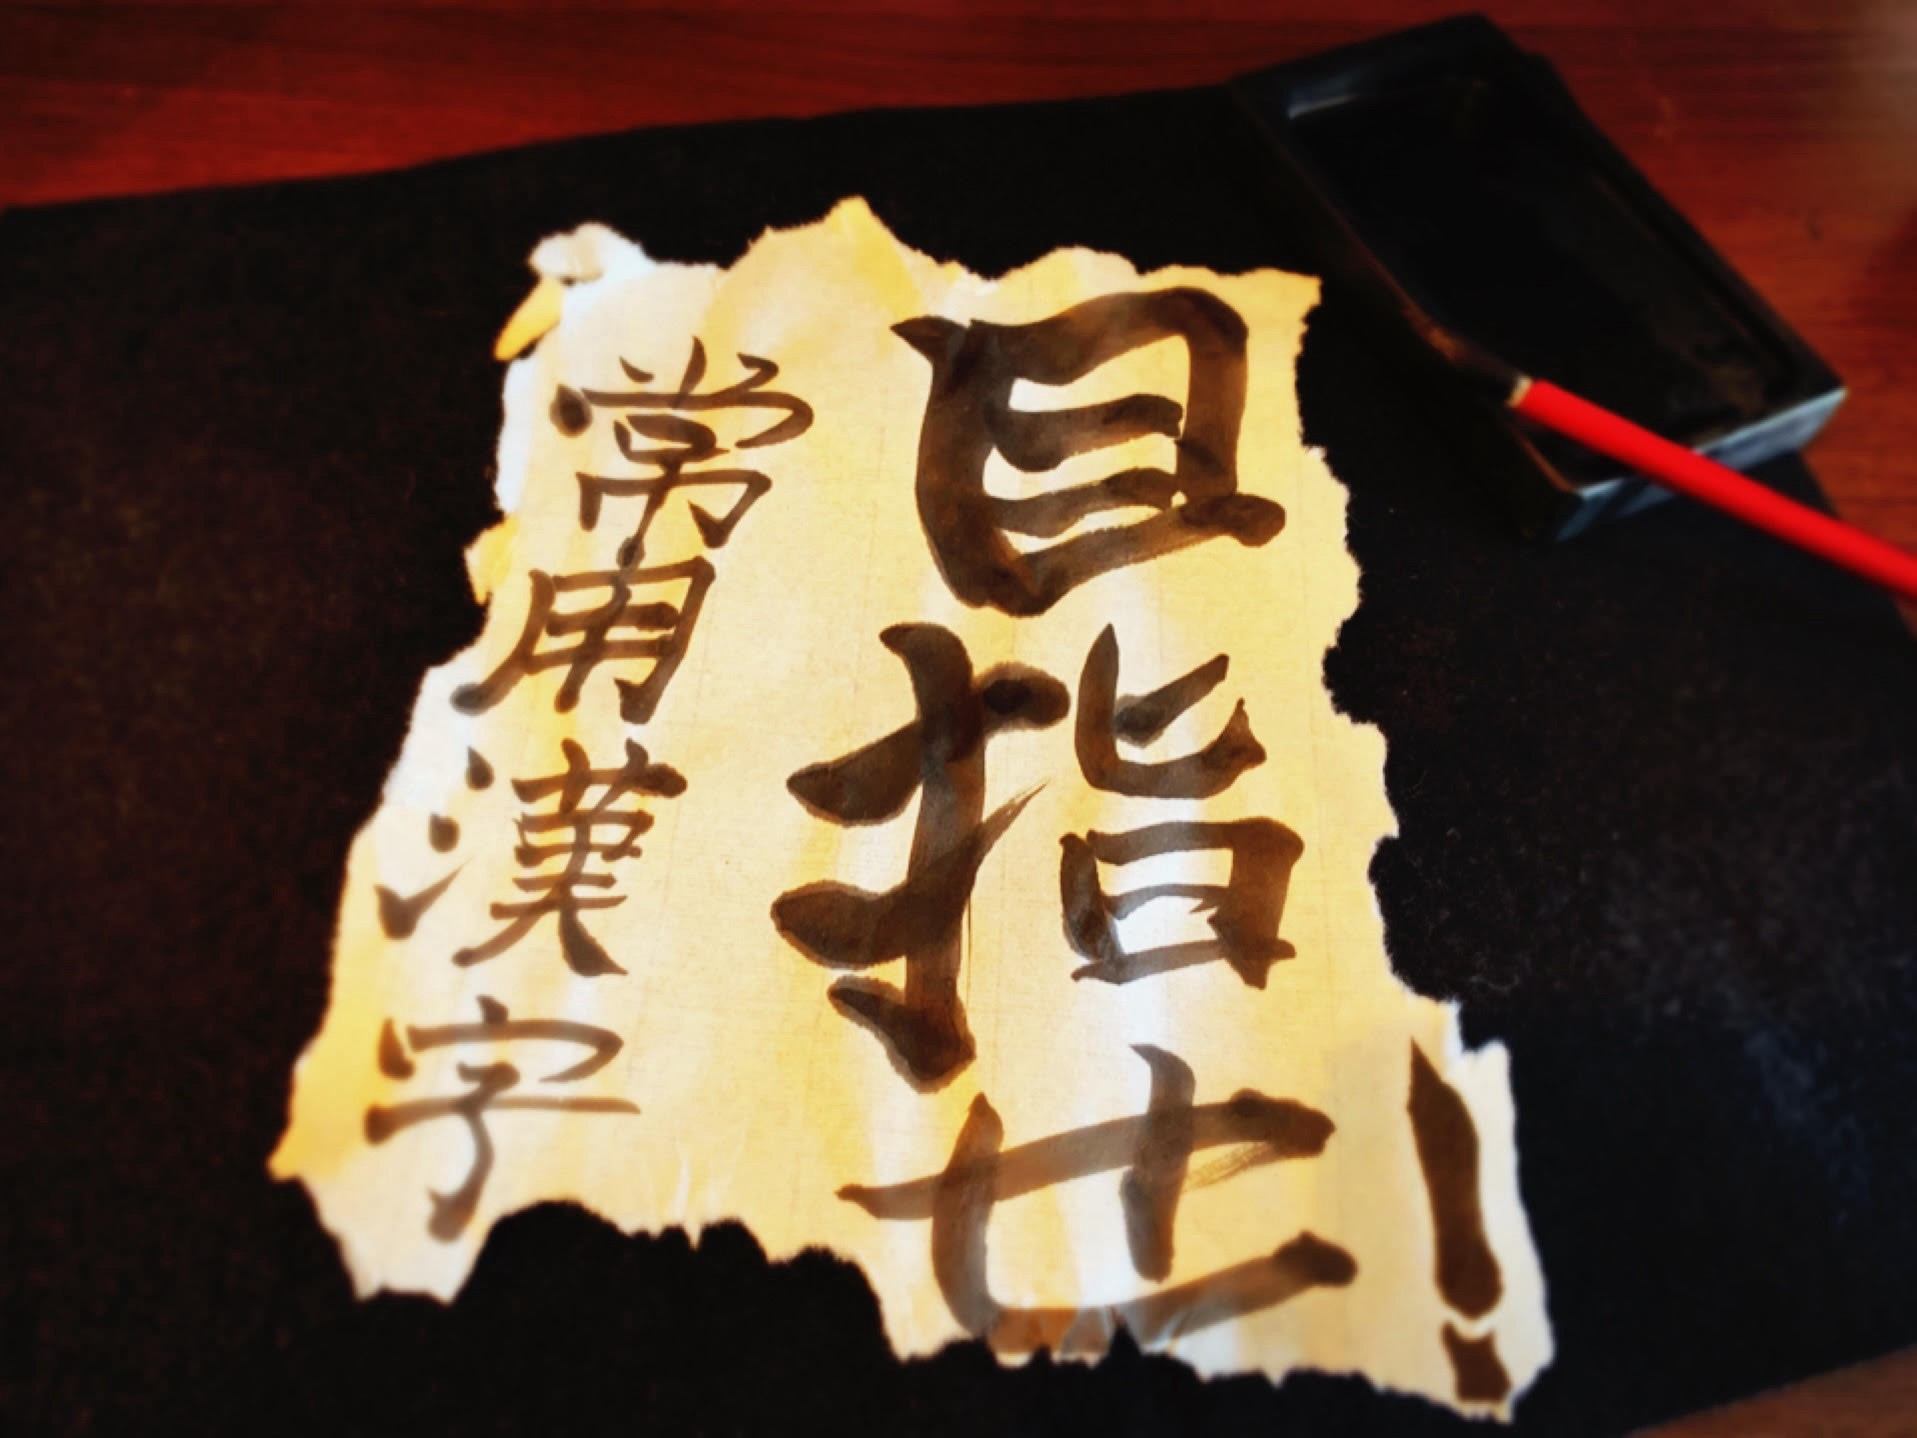 Rice paper with calligraphy written on it resting on a desk next to a traditional brush which is leaning on an ink stone.